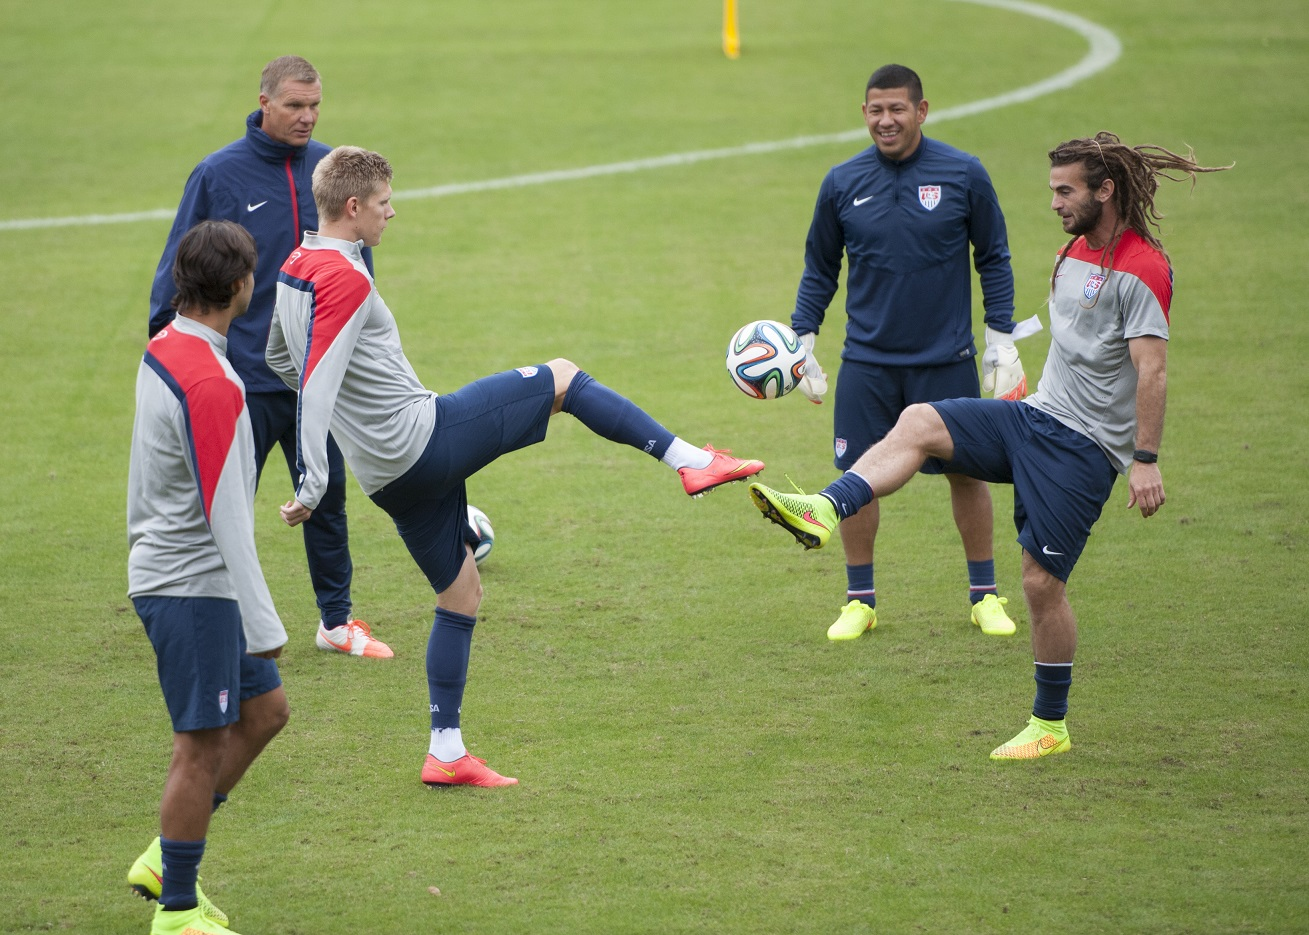 United States forward Aron Johannsson (left) and midfielder Kyle Beckerman (right) try to control a ball before practice at Sao Paulo FC's training ground in Sao Paulo, Brazil on June 20, 2014.